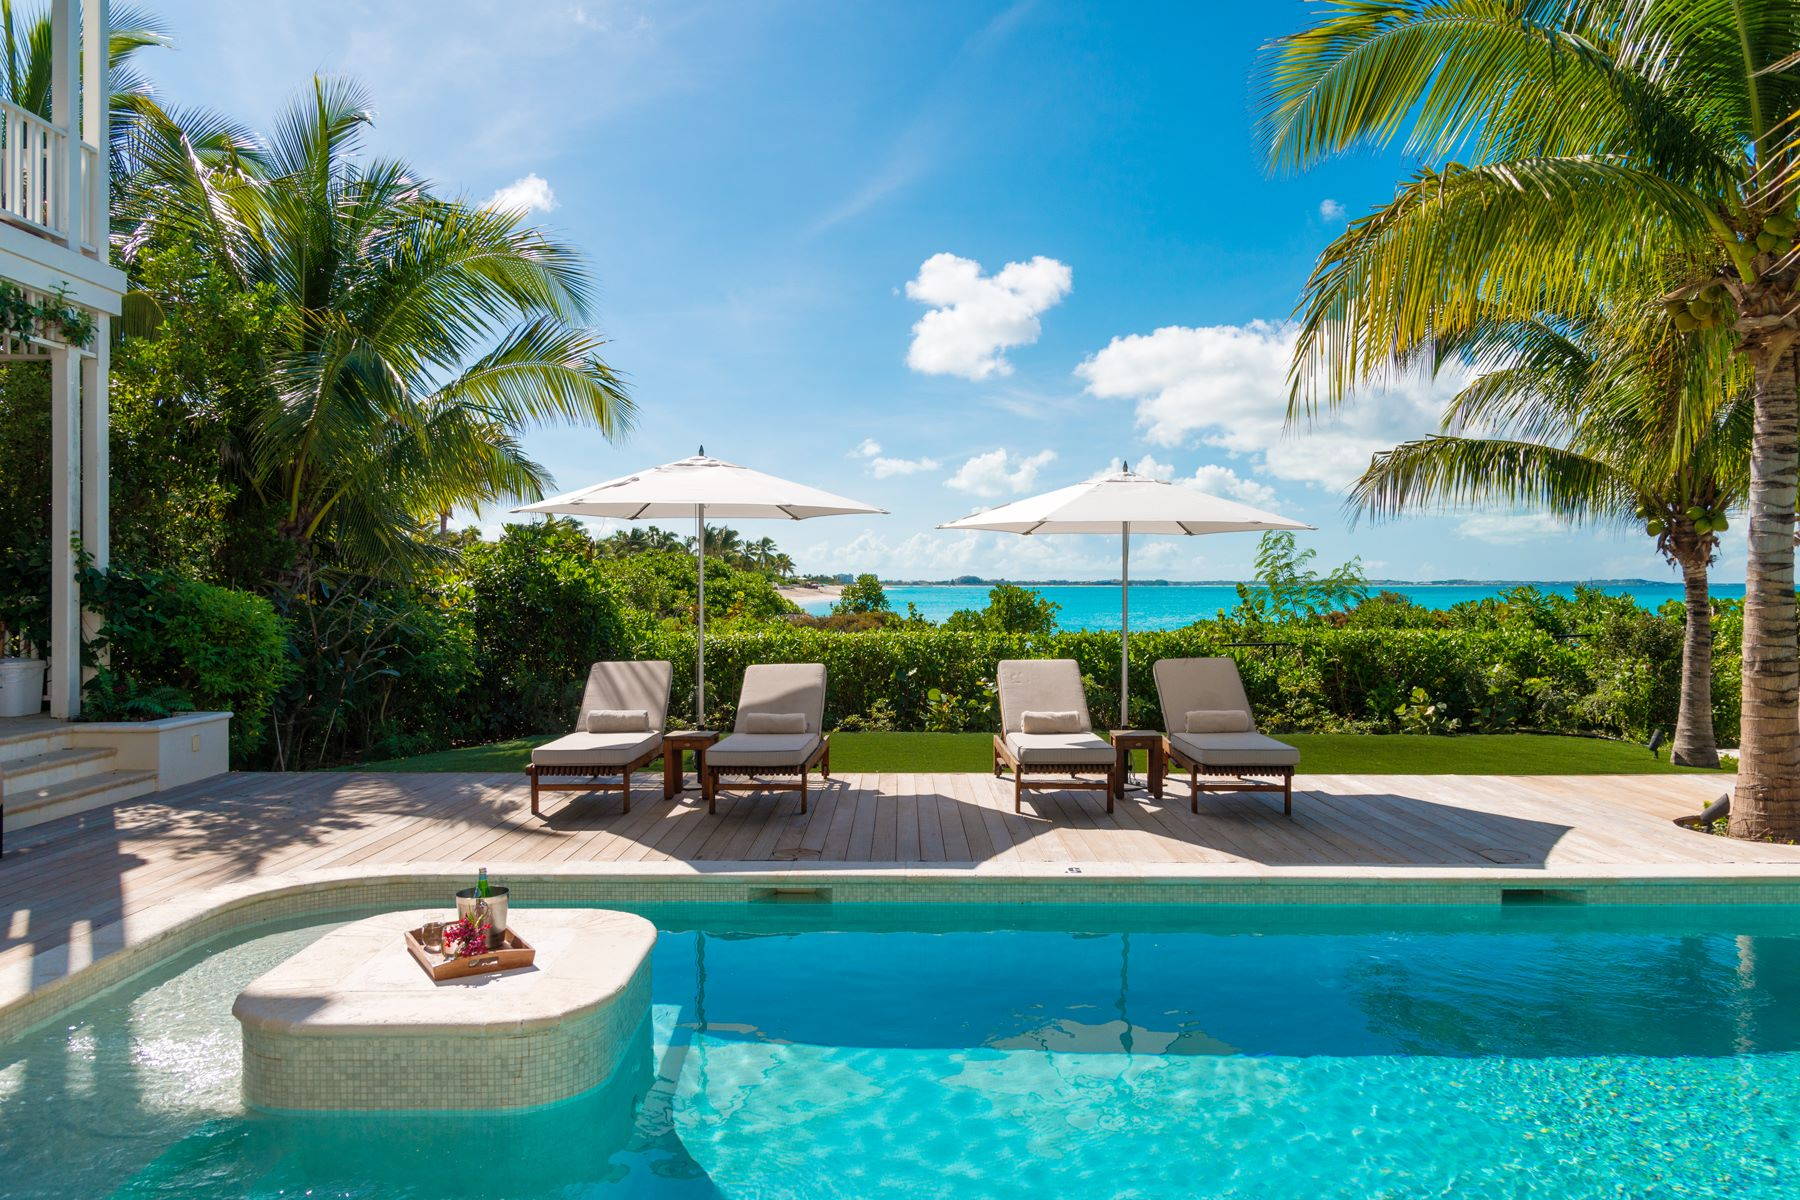 Additional photo for property listing at Saving Grace - Luxurious Beachfront Villa  格蕾斯湾, 普罗维登夏 TCI BWI 特克斯和凯科斯群岛